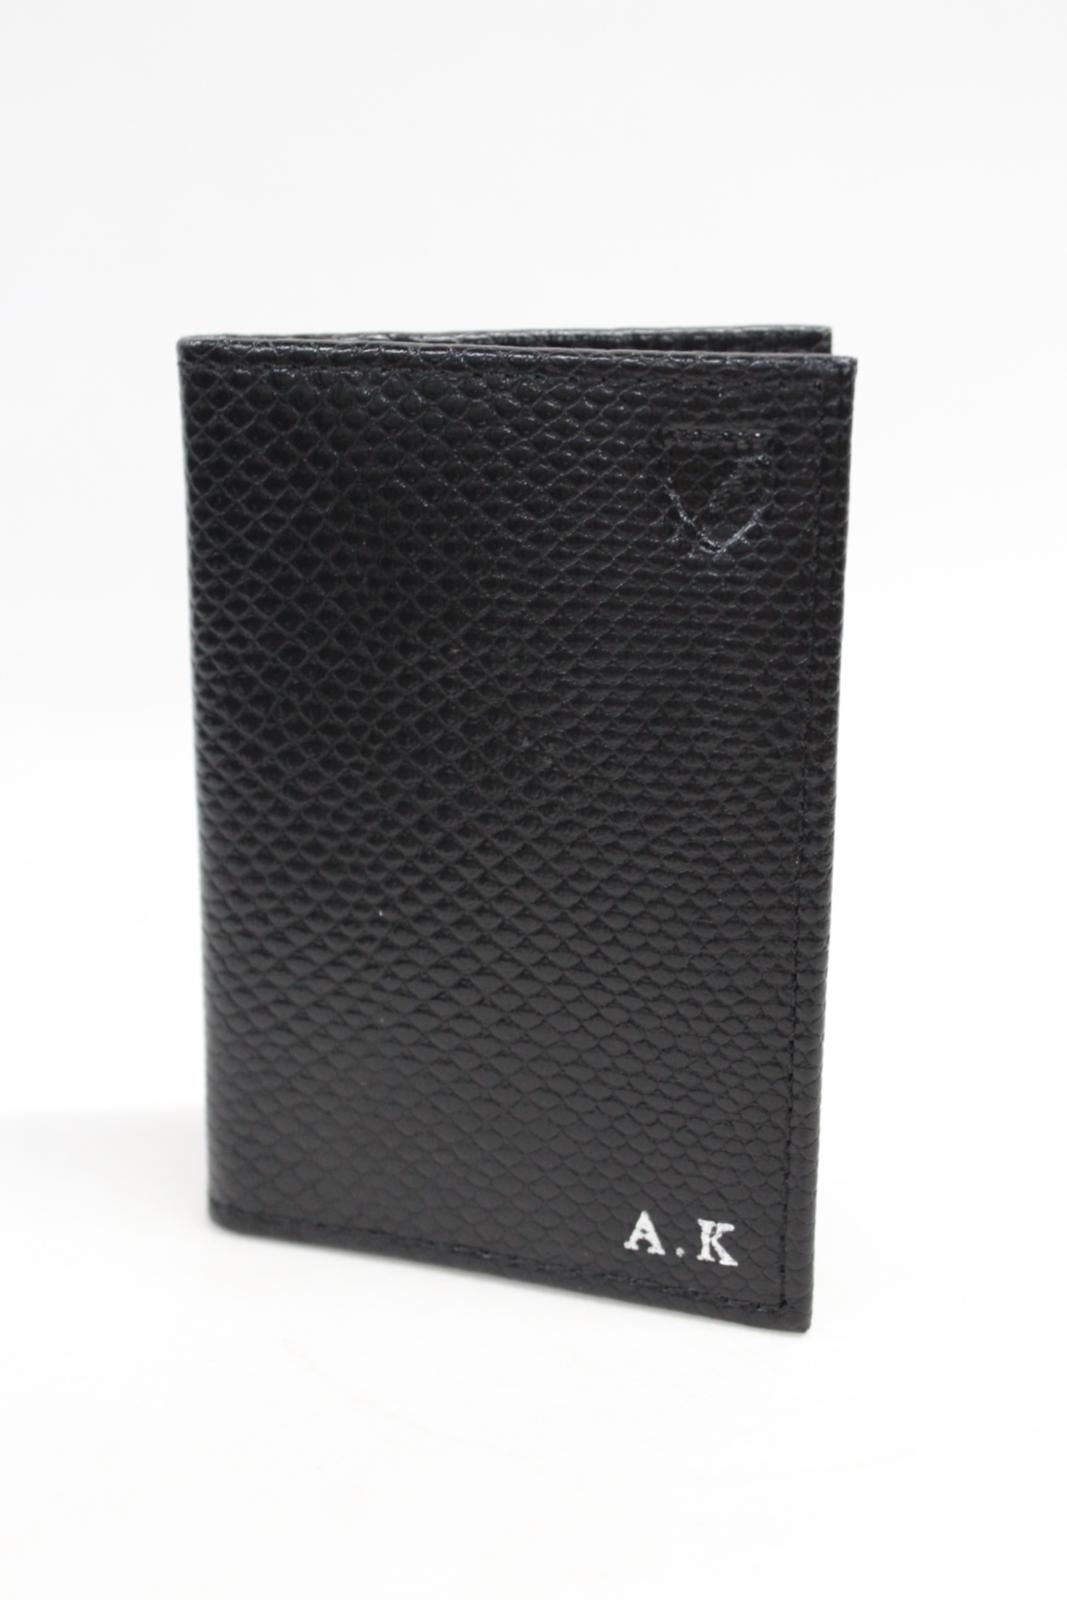 ASPINAL-OF-LONDON-Leather-Card-Holders-Snake-Print-Design-Engraved-Initials-NEW